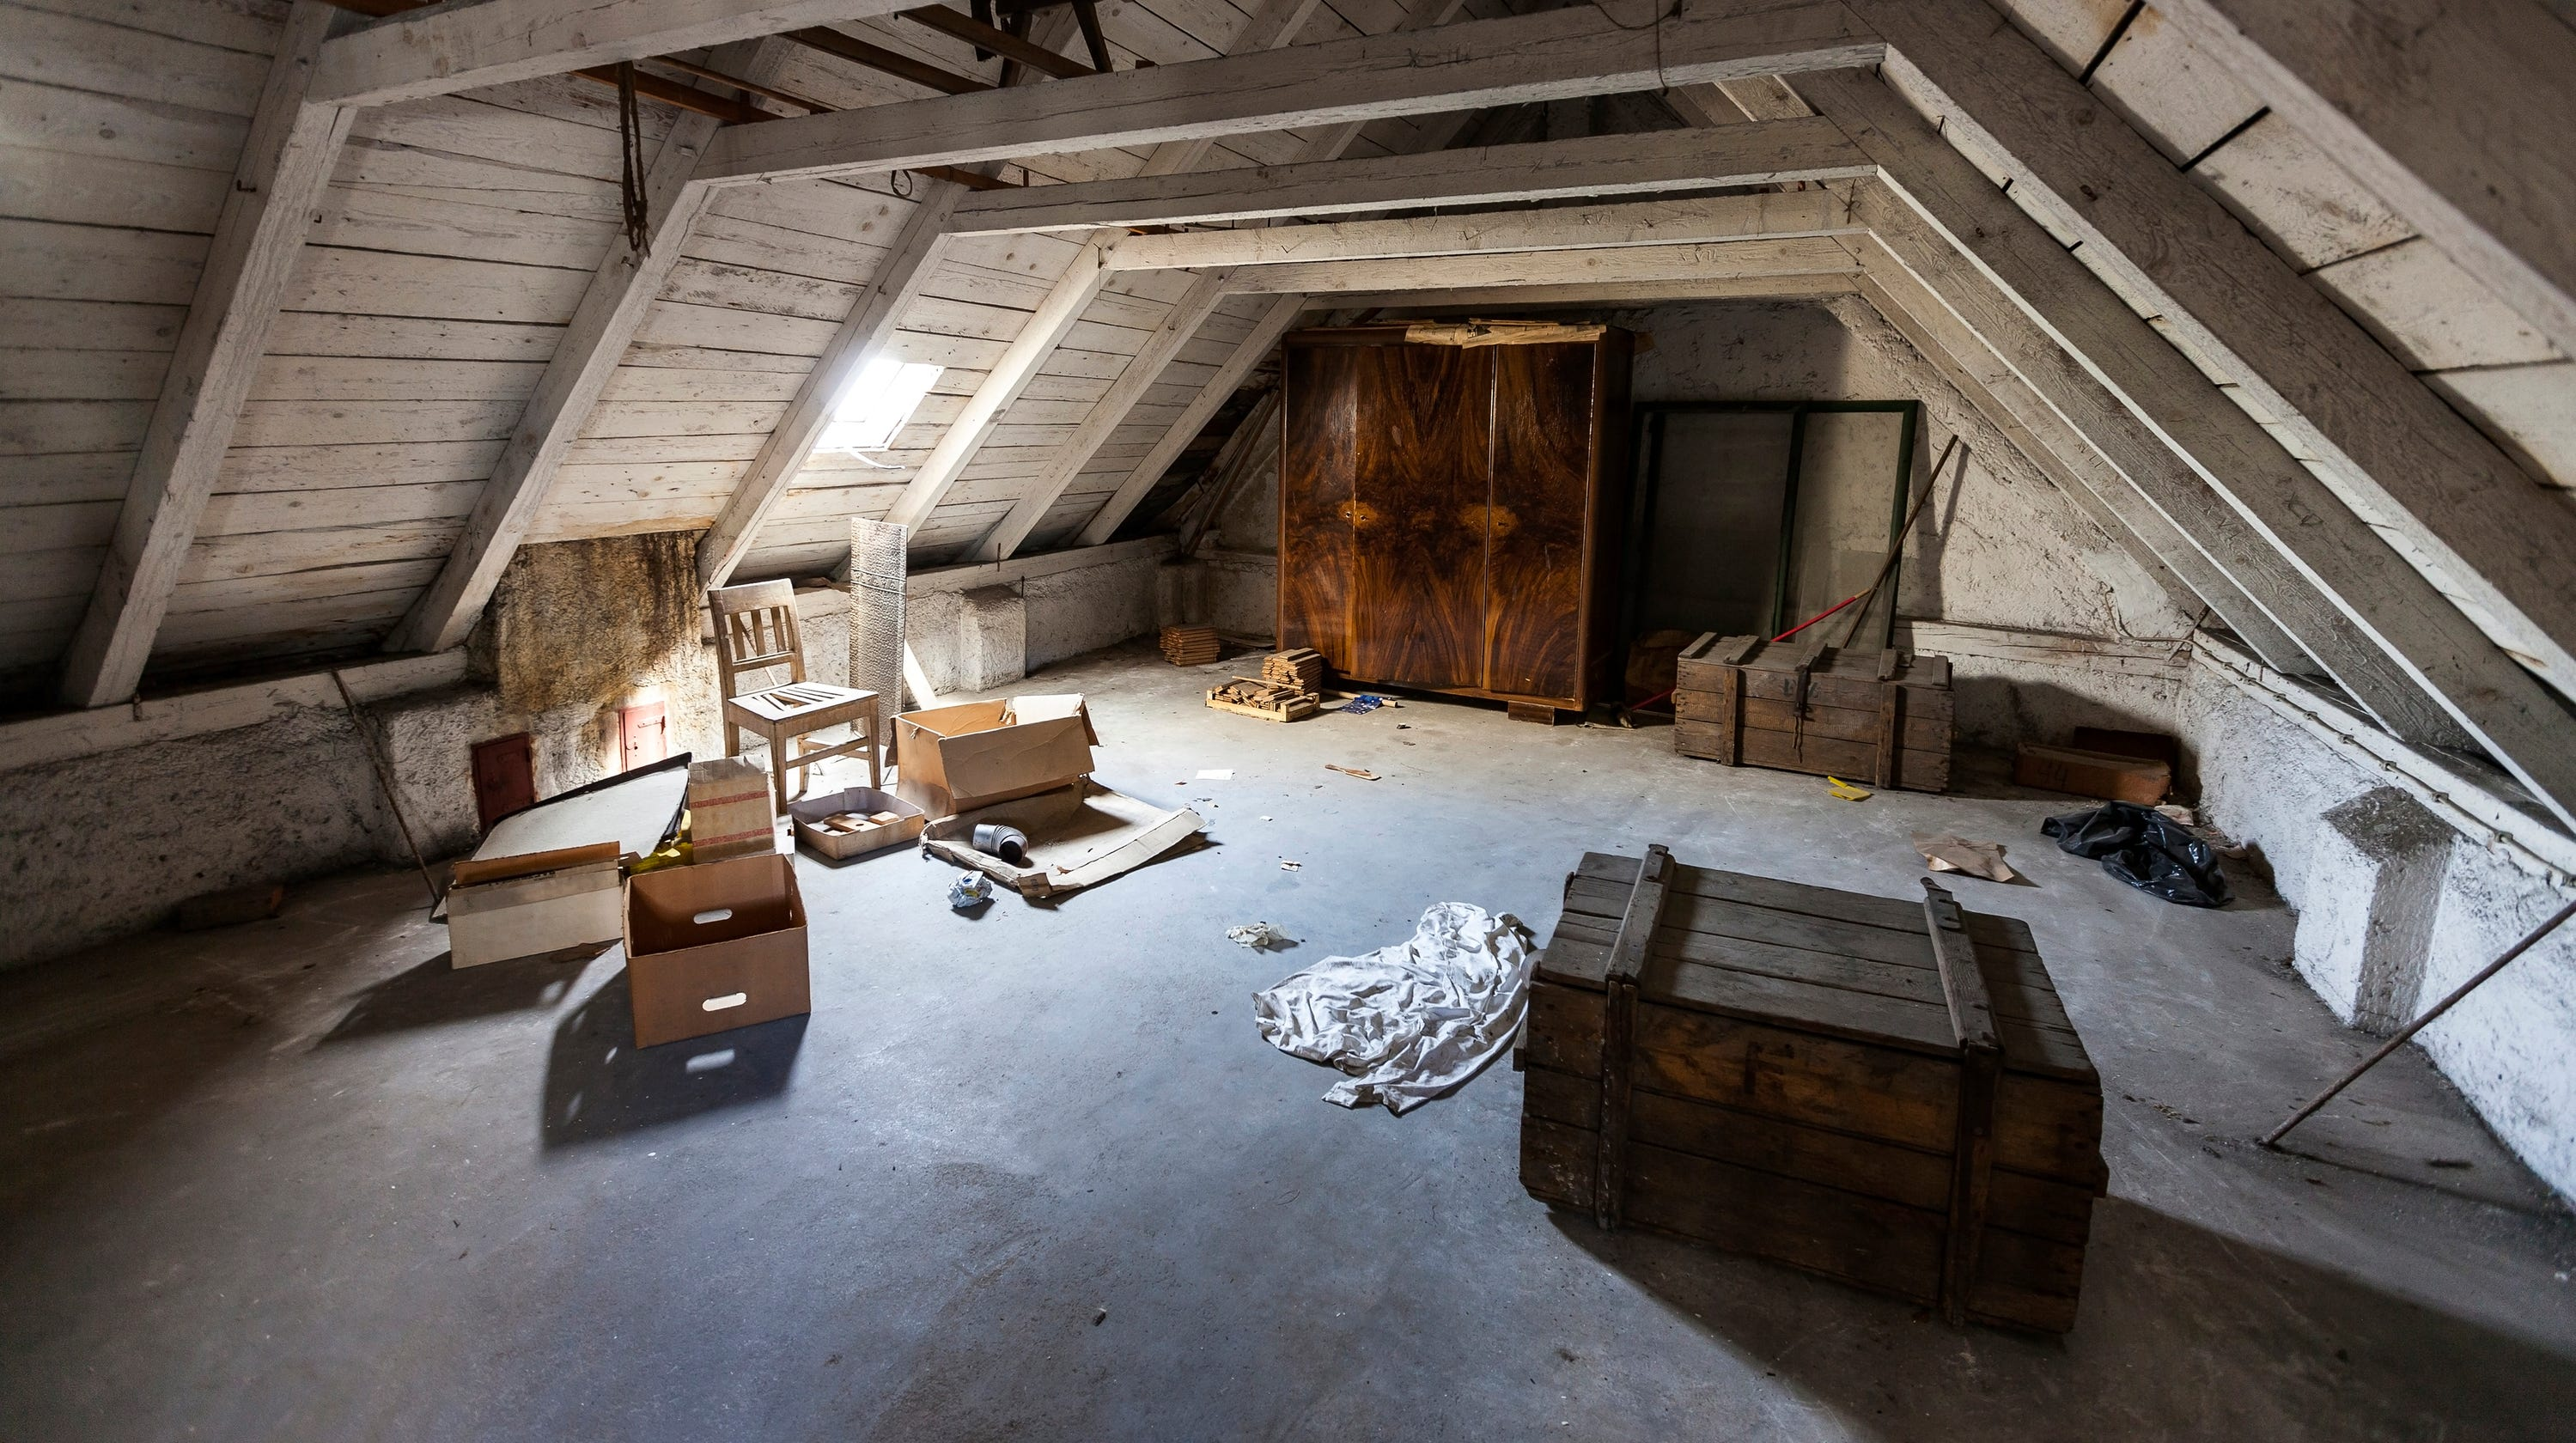 Hot Climate? Don't Store These Things In The Attic